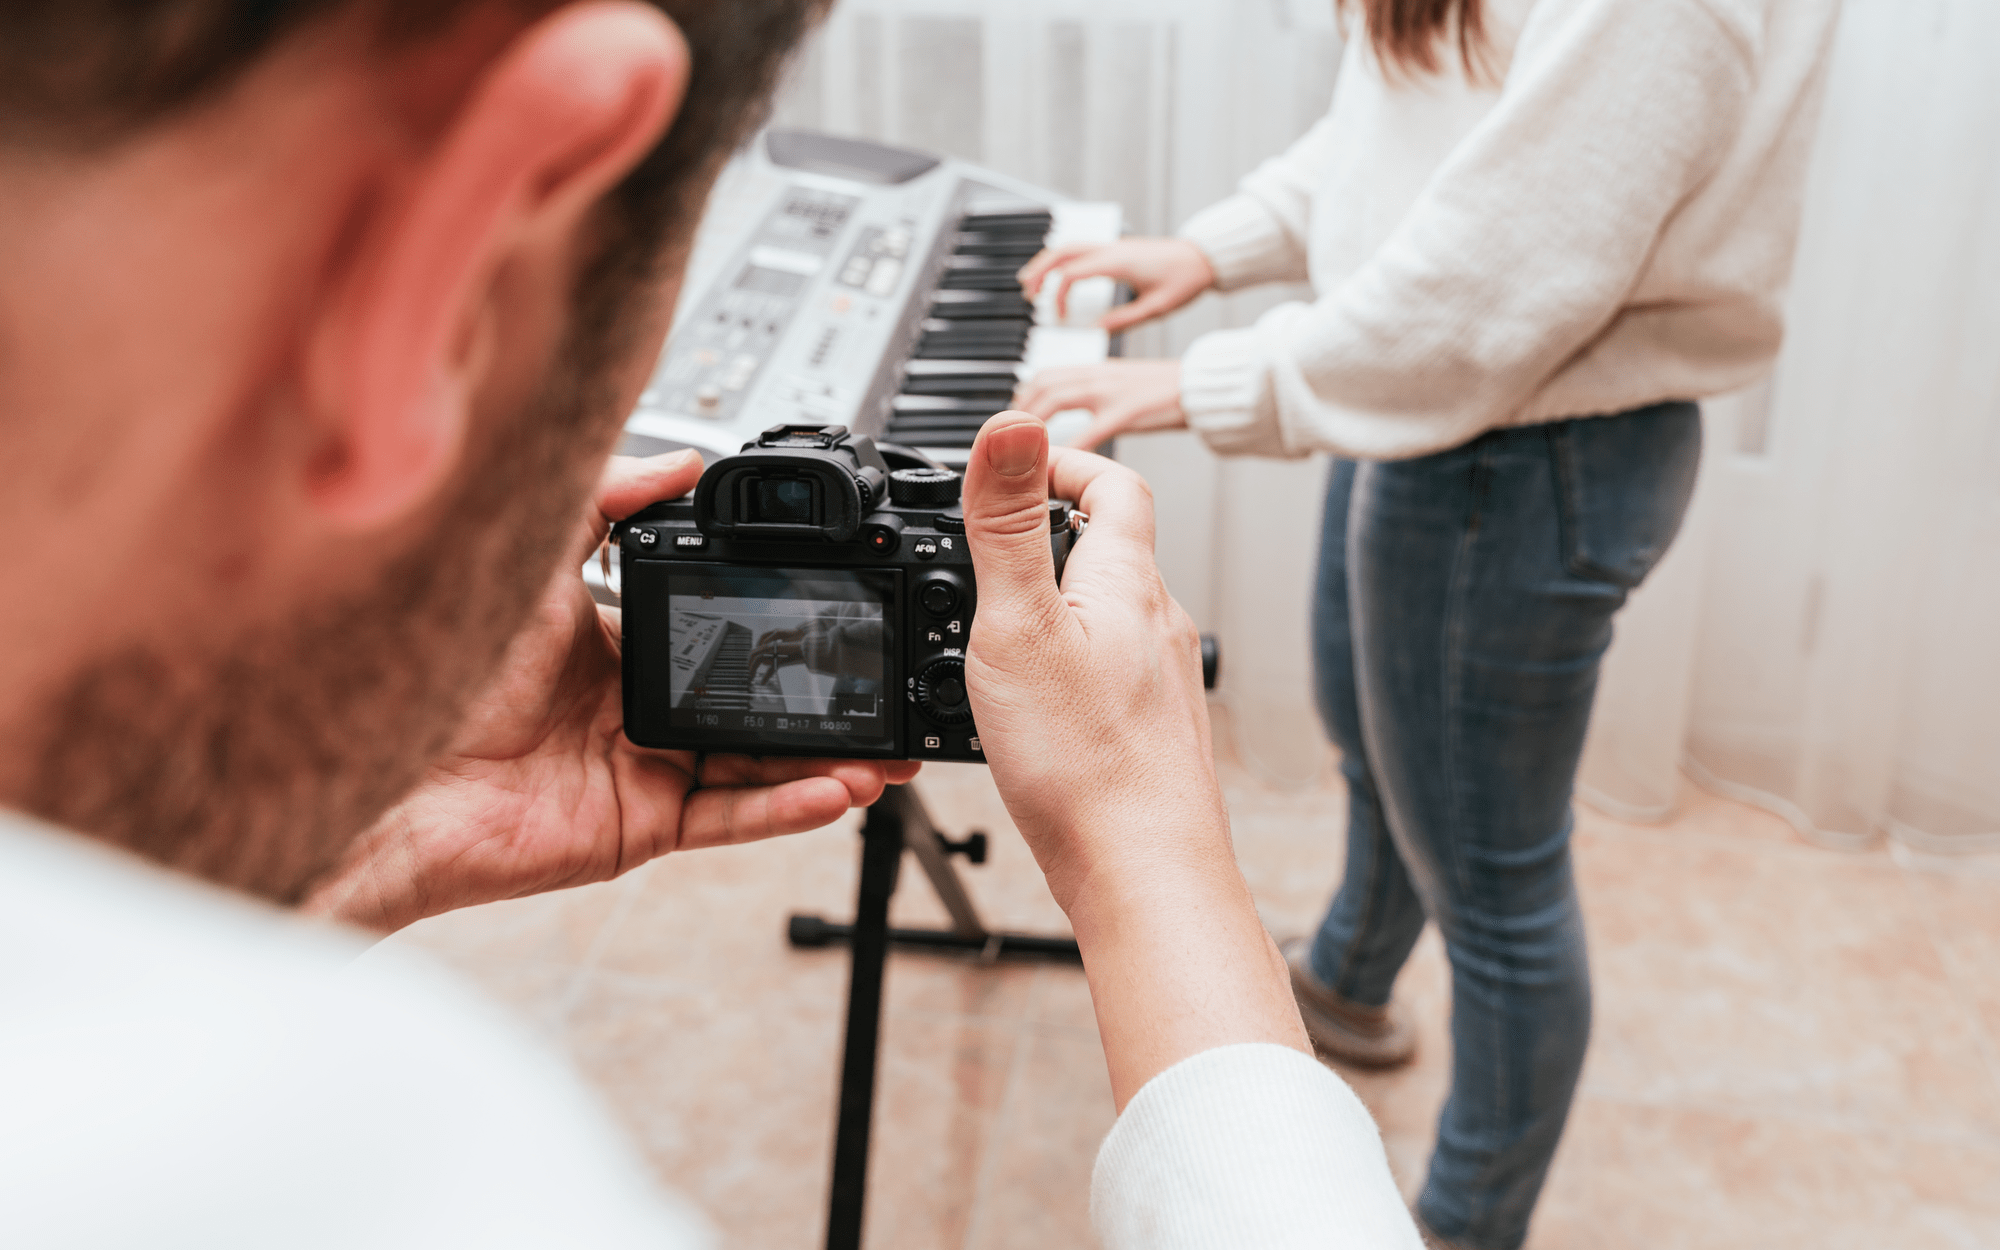 Shooting Videos On A Budget